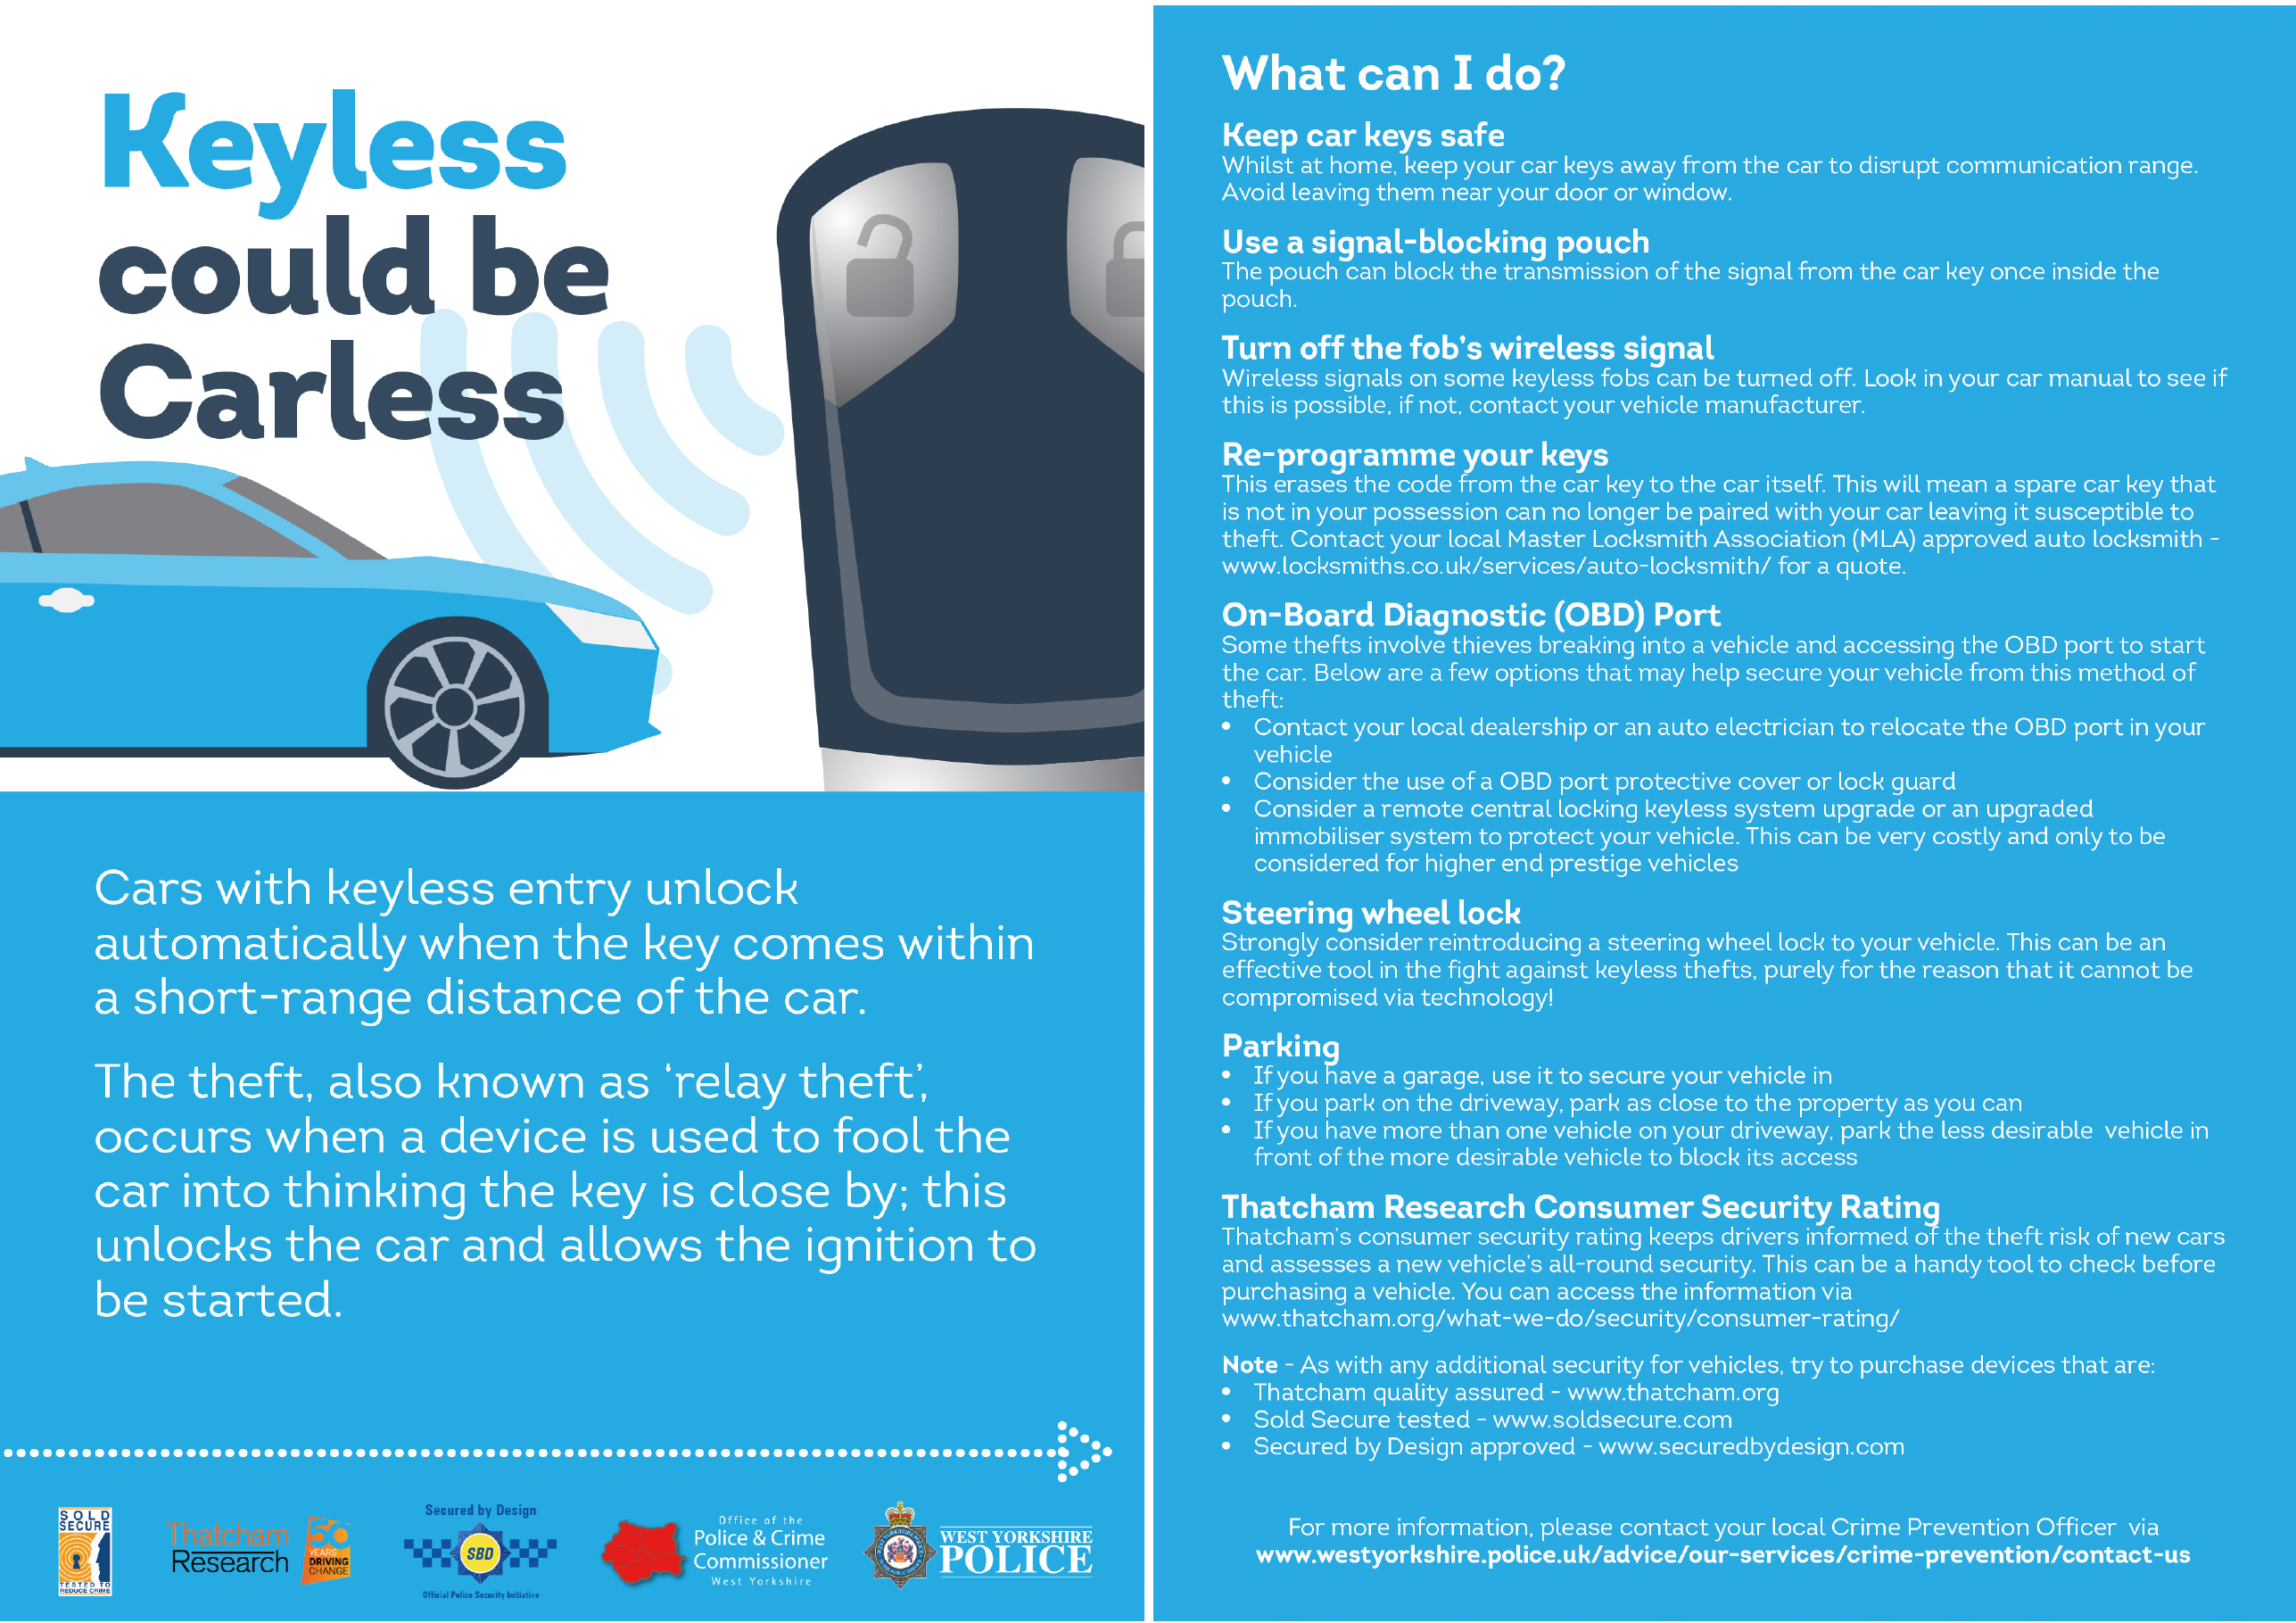 Poster advice for keeping keyless cars safe